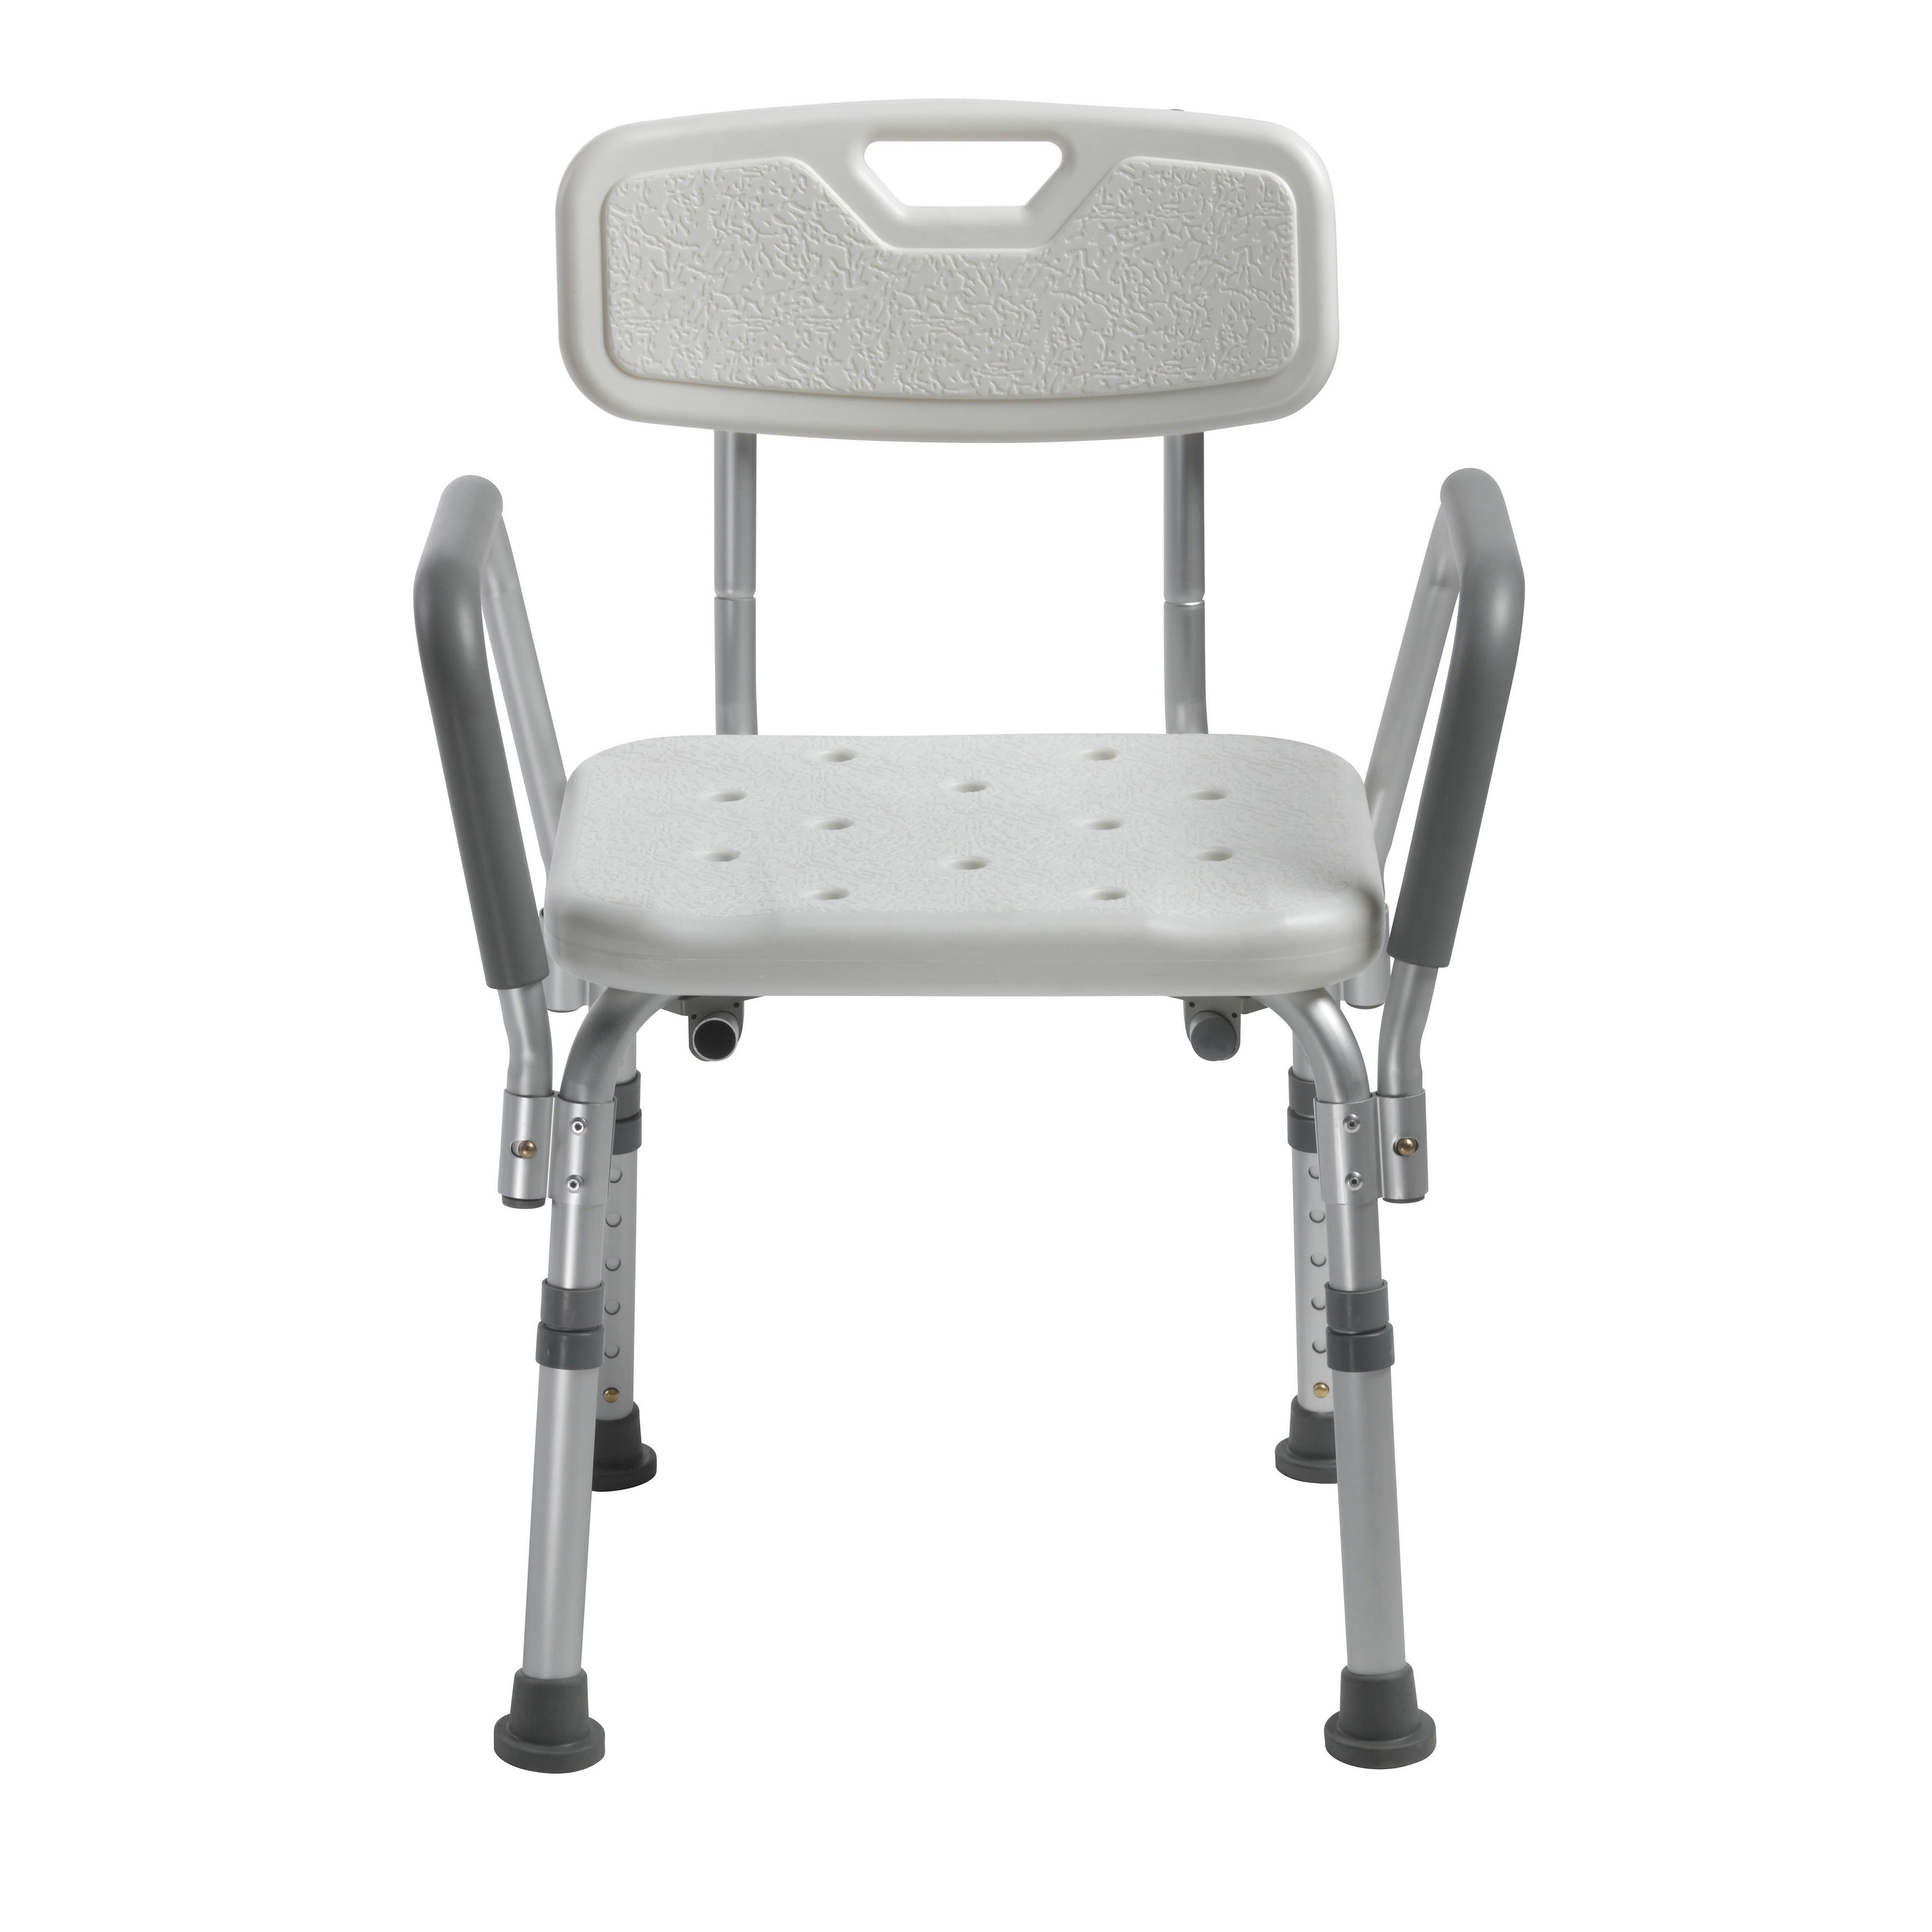 Drive Medical Knock Down Bath Bench with Back, and Padded...